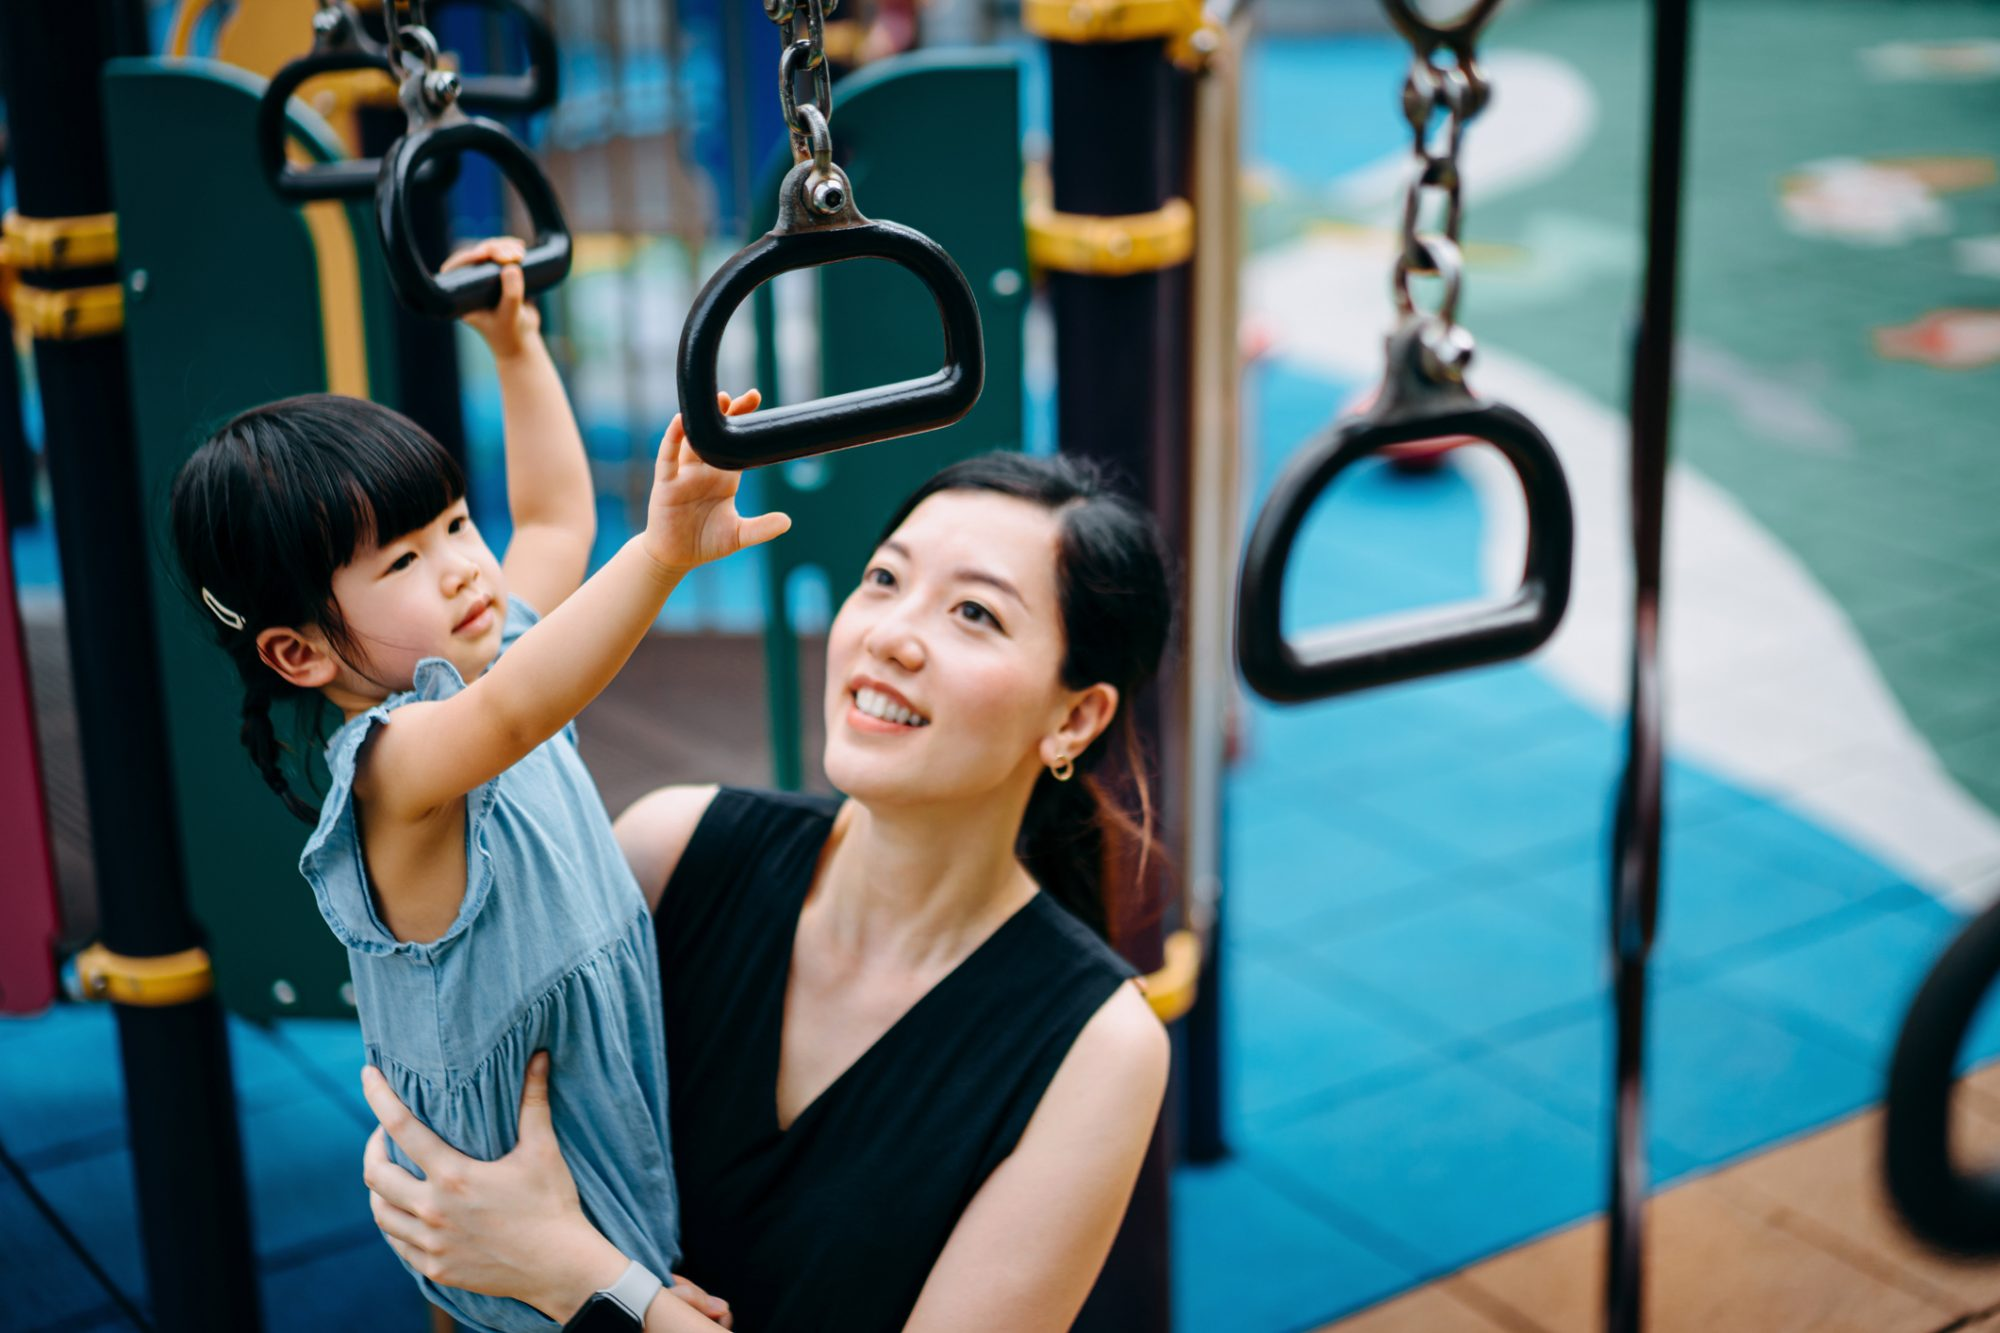 An image of a mother with her daughter at the playground.